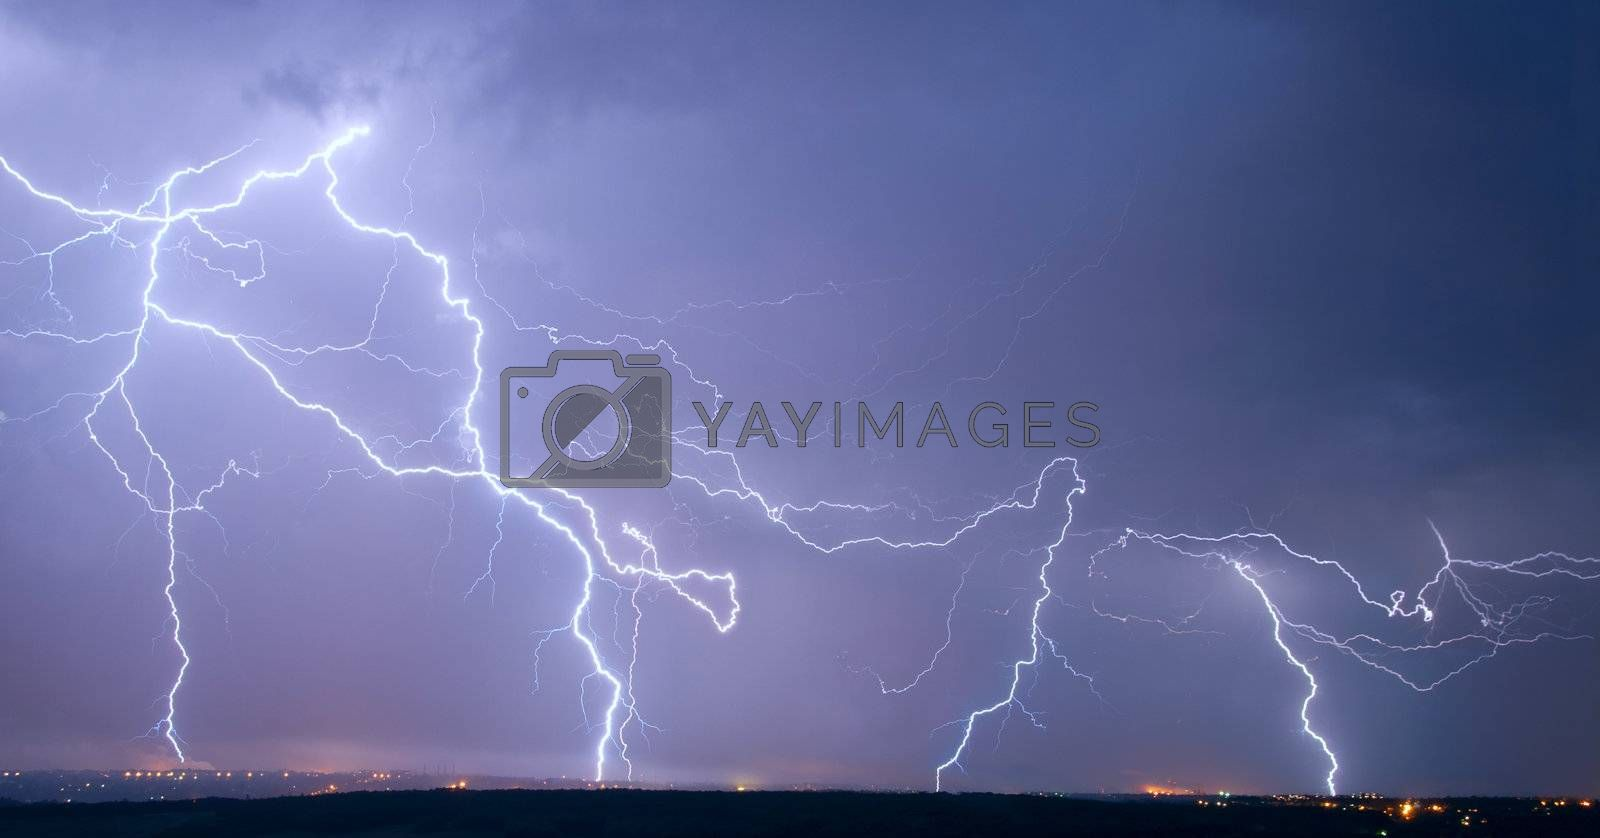 Many big lightning in the stormy sky over a city